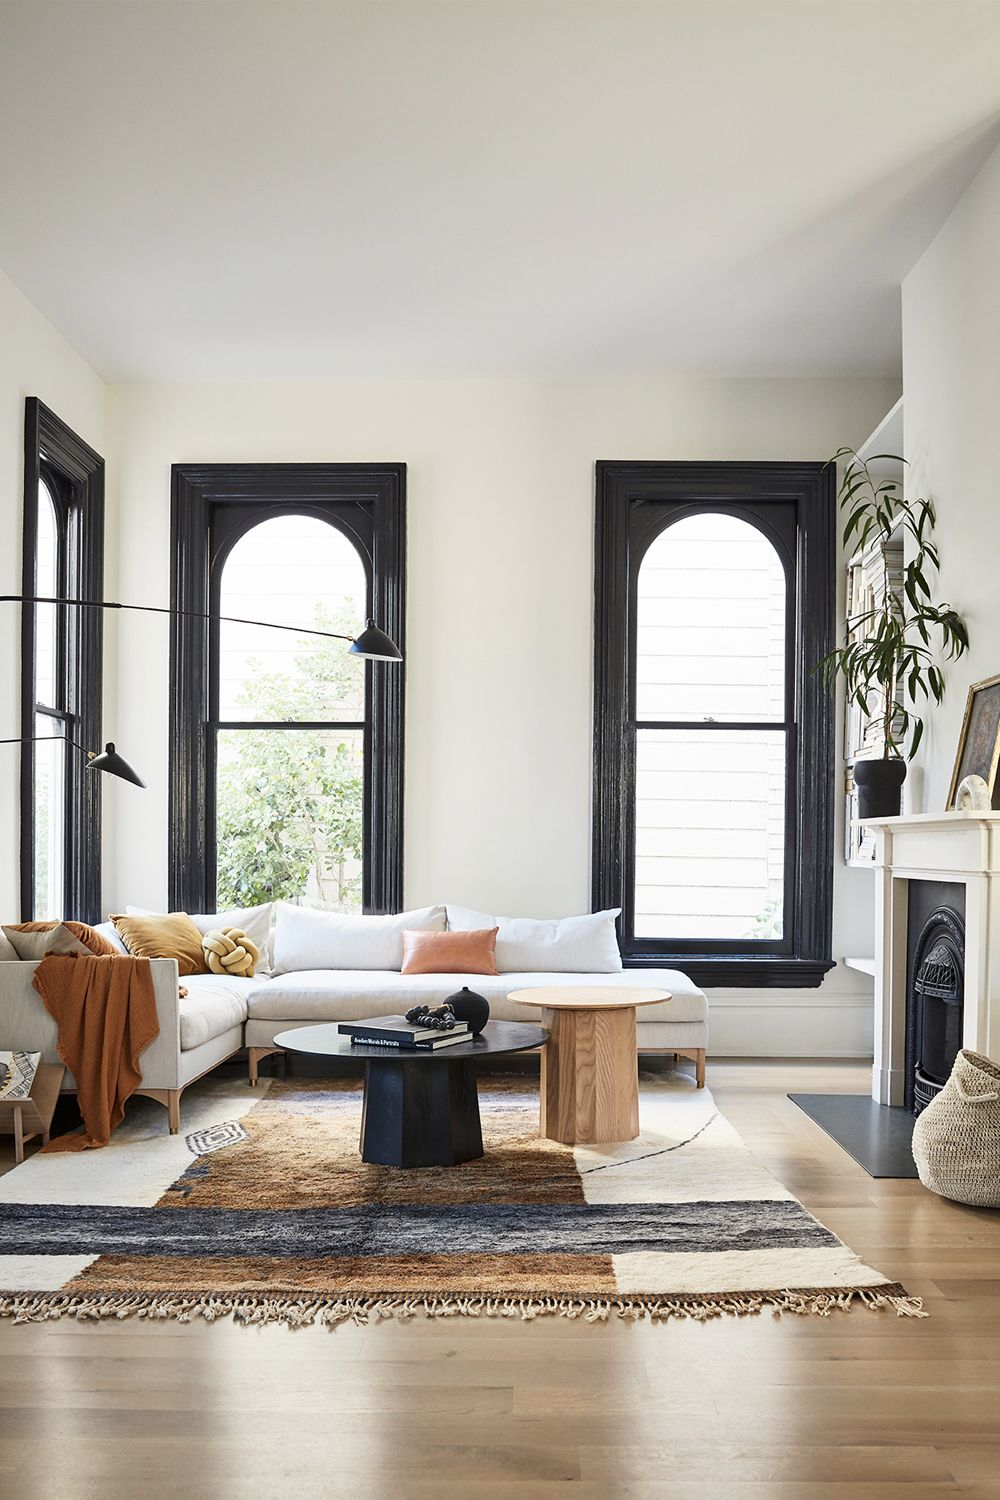 This Old Victorian Reveal 1st Floor Before Design After Apartment34 San Francisco Houses Cheap Home Decor House Interior